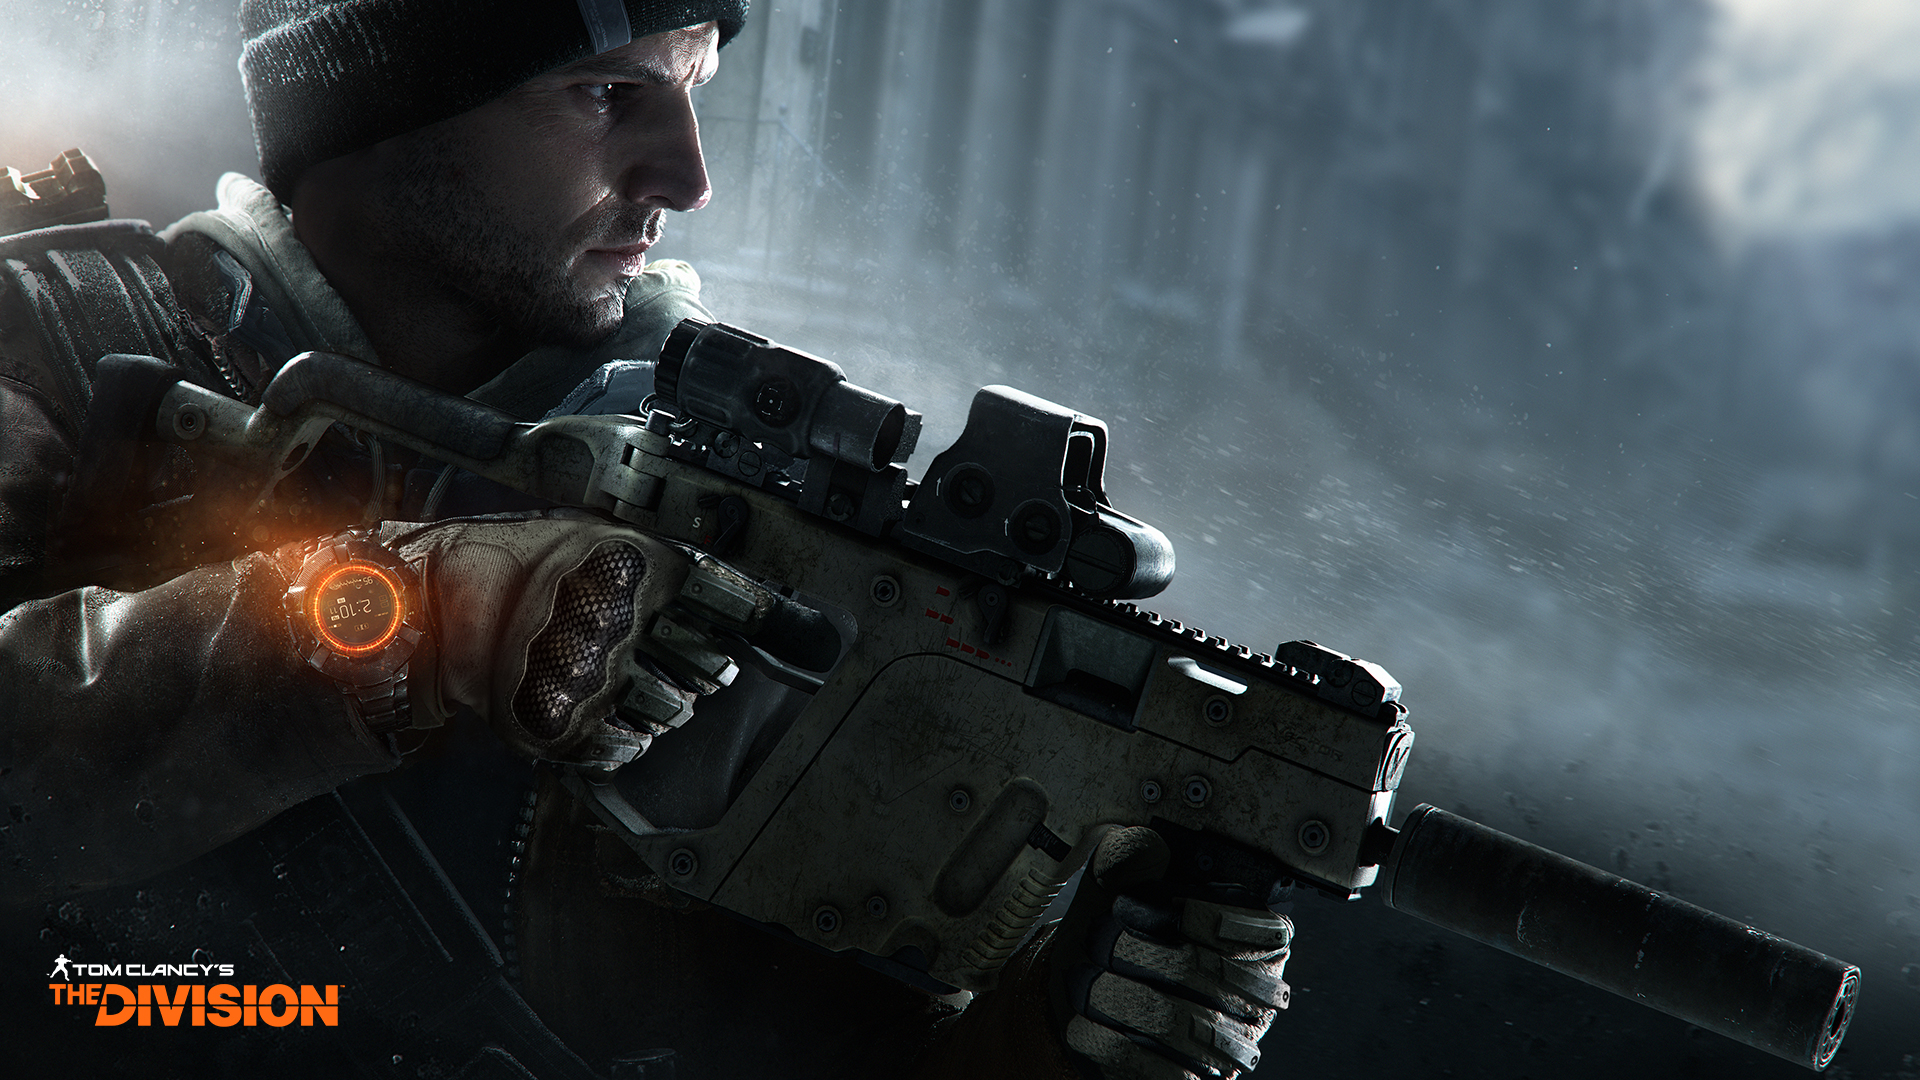 tom clancy's the division wallpapers / the division zone